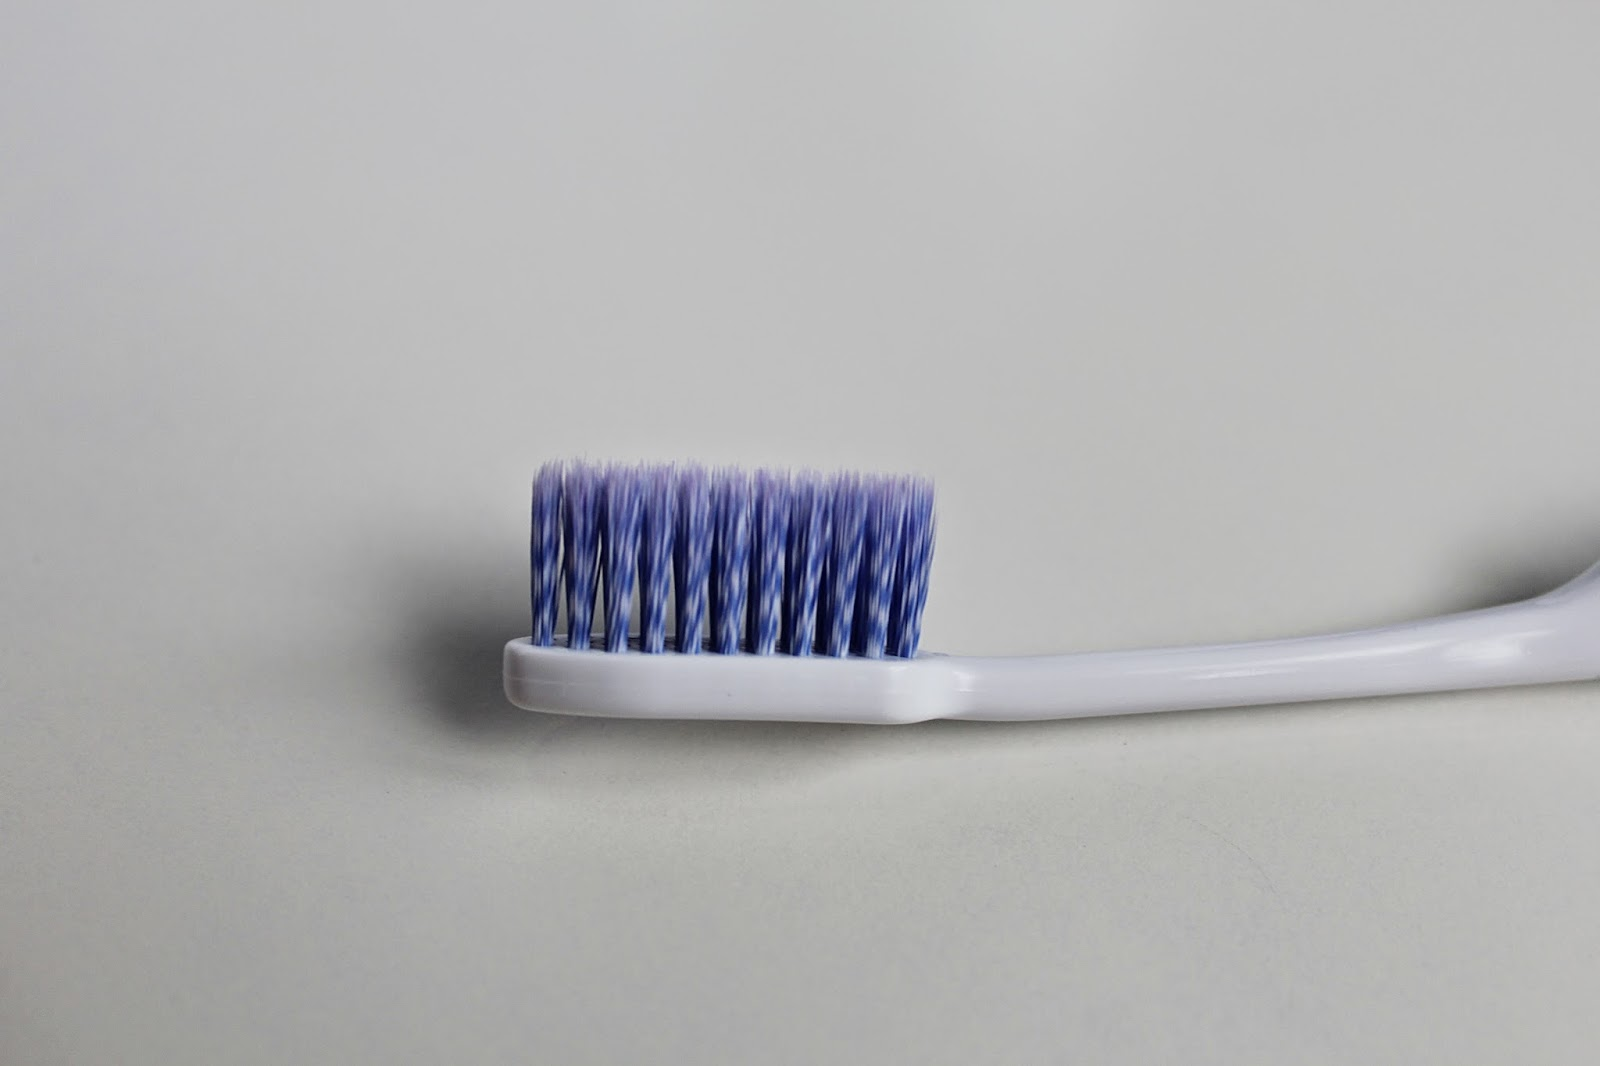 Jq Talks Systema Spiral 002mm Toothbrush Review Power Clean Regular Product Was Given But Opinions Remain My Own